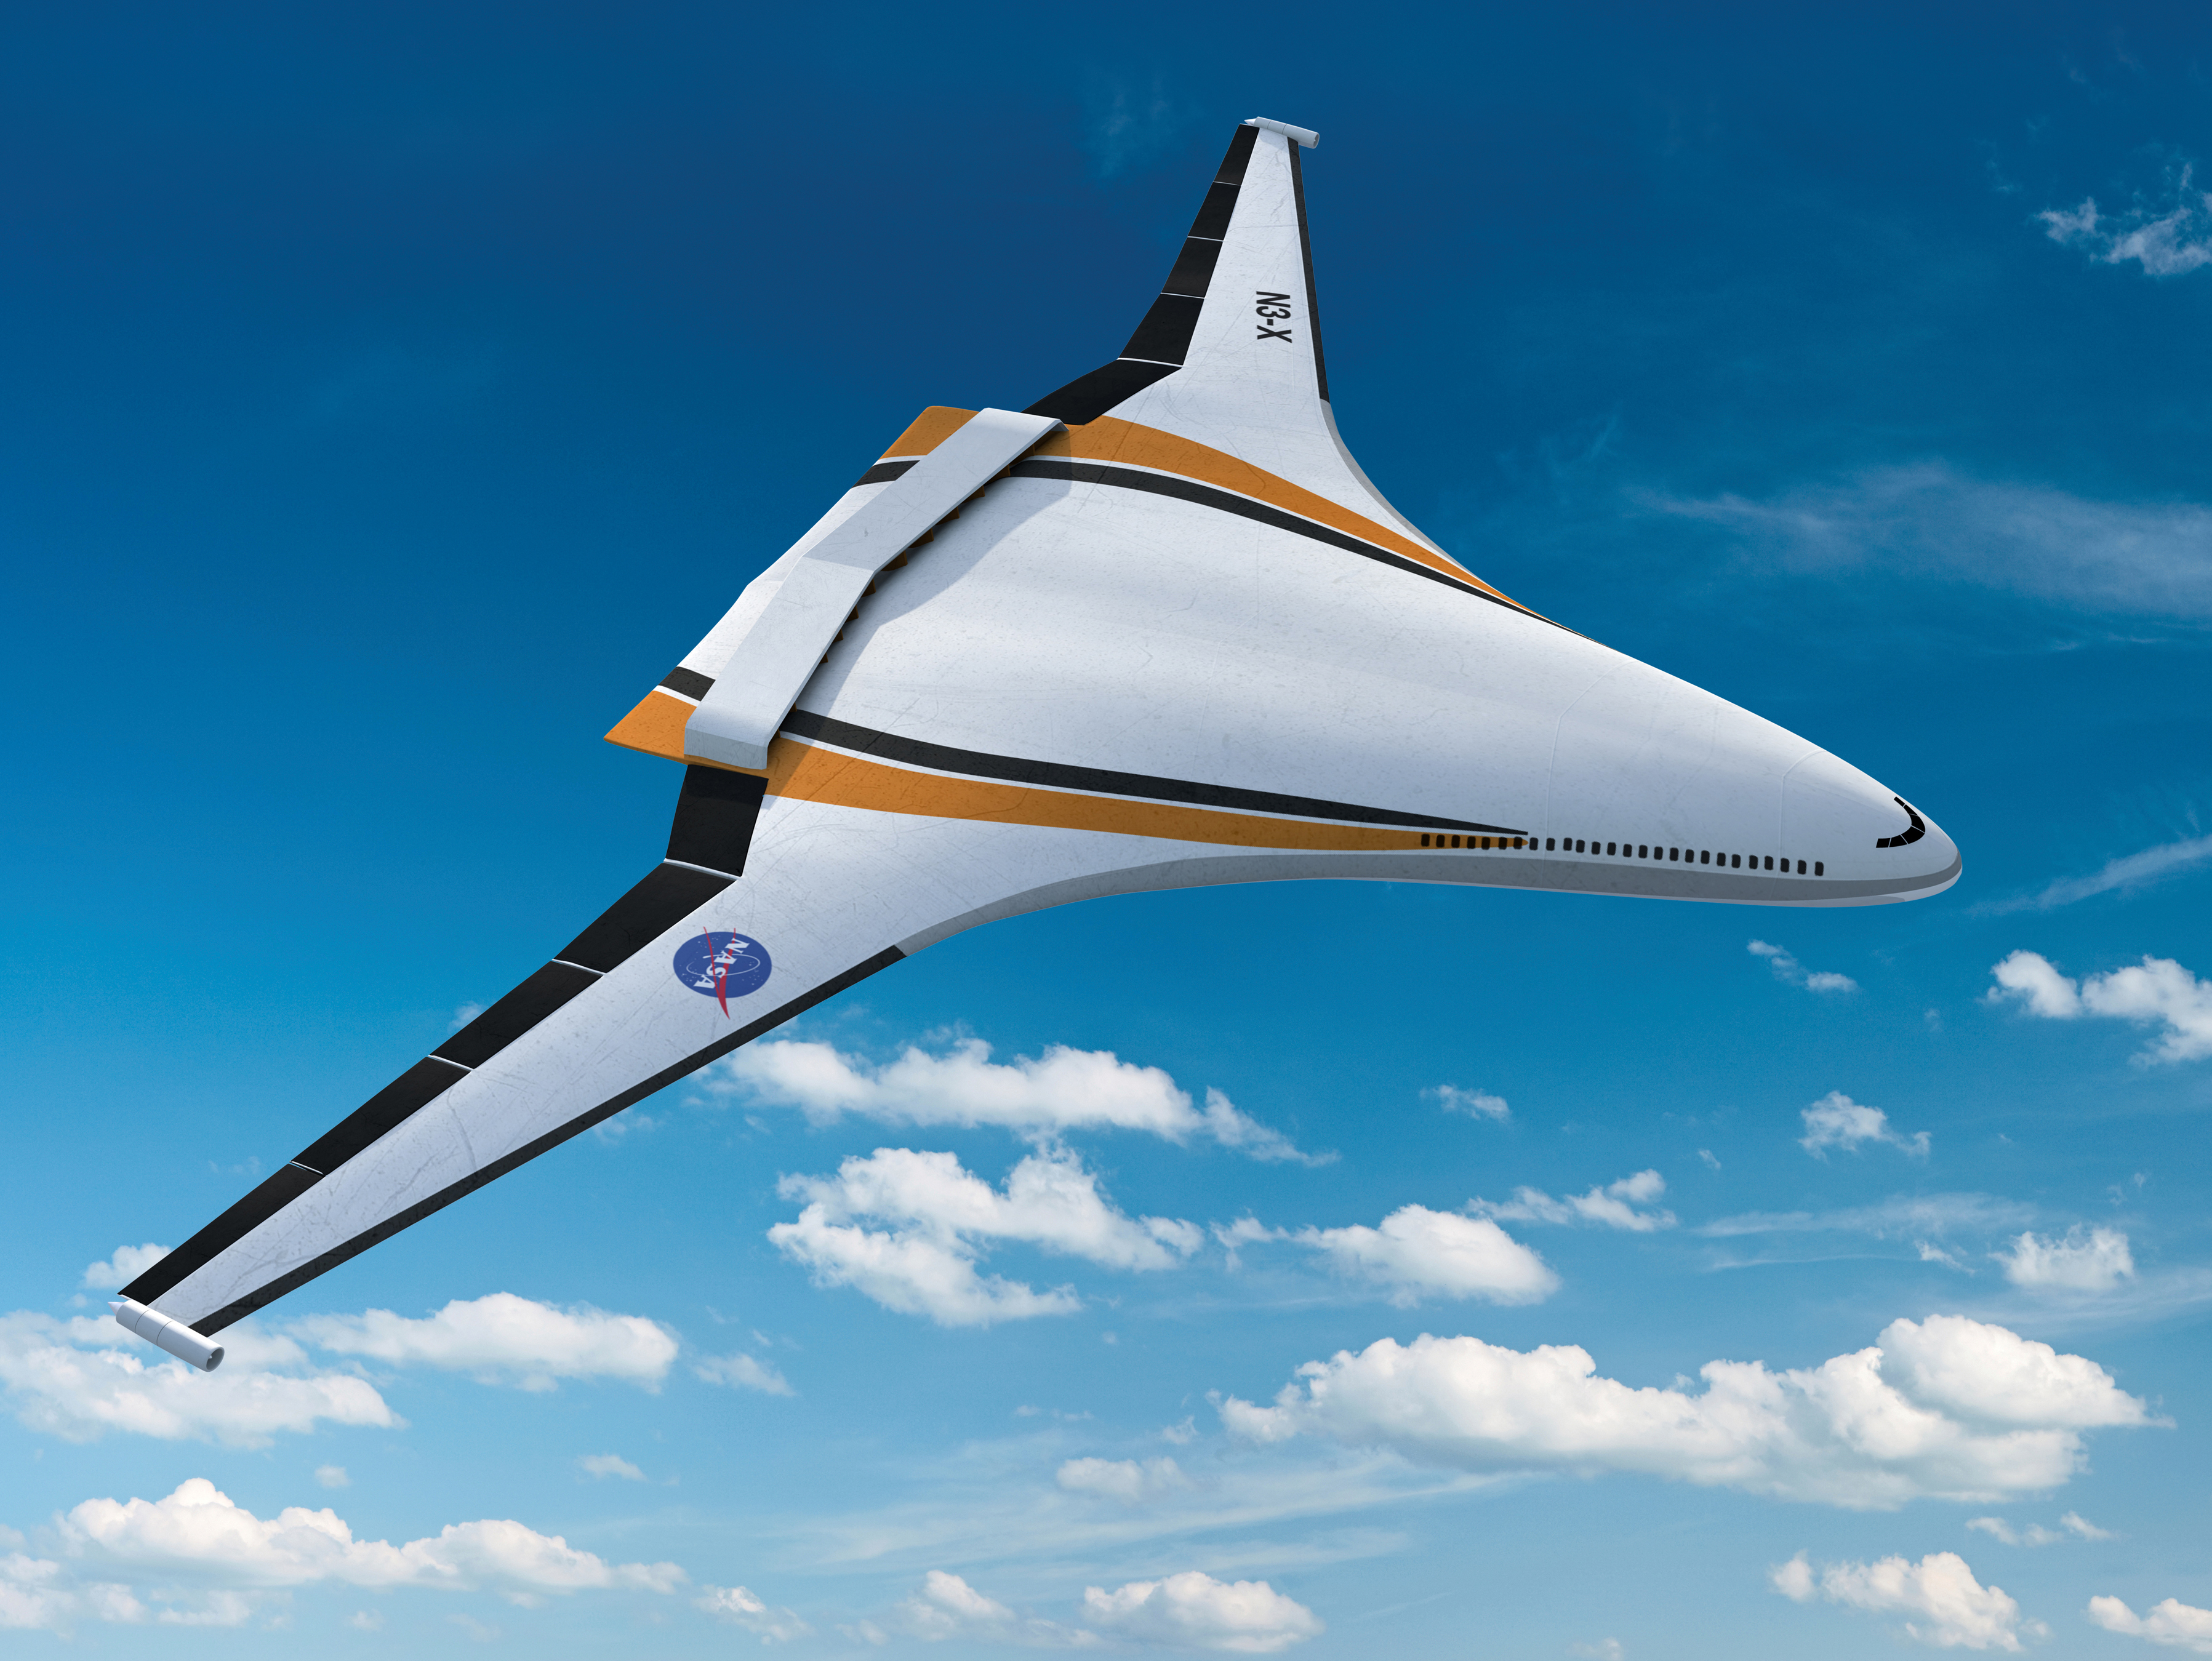 future airplanes will be designed to reduce environmental impact